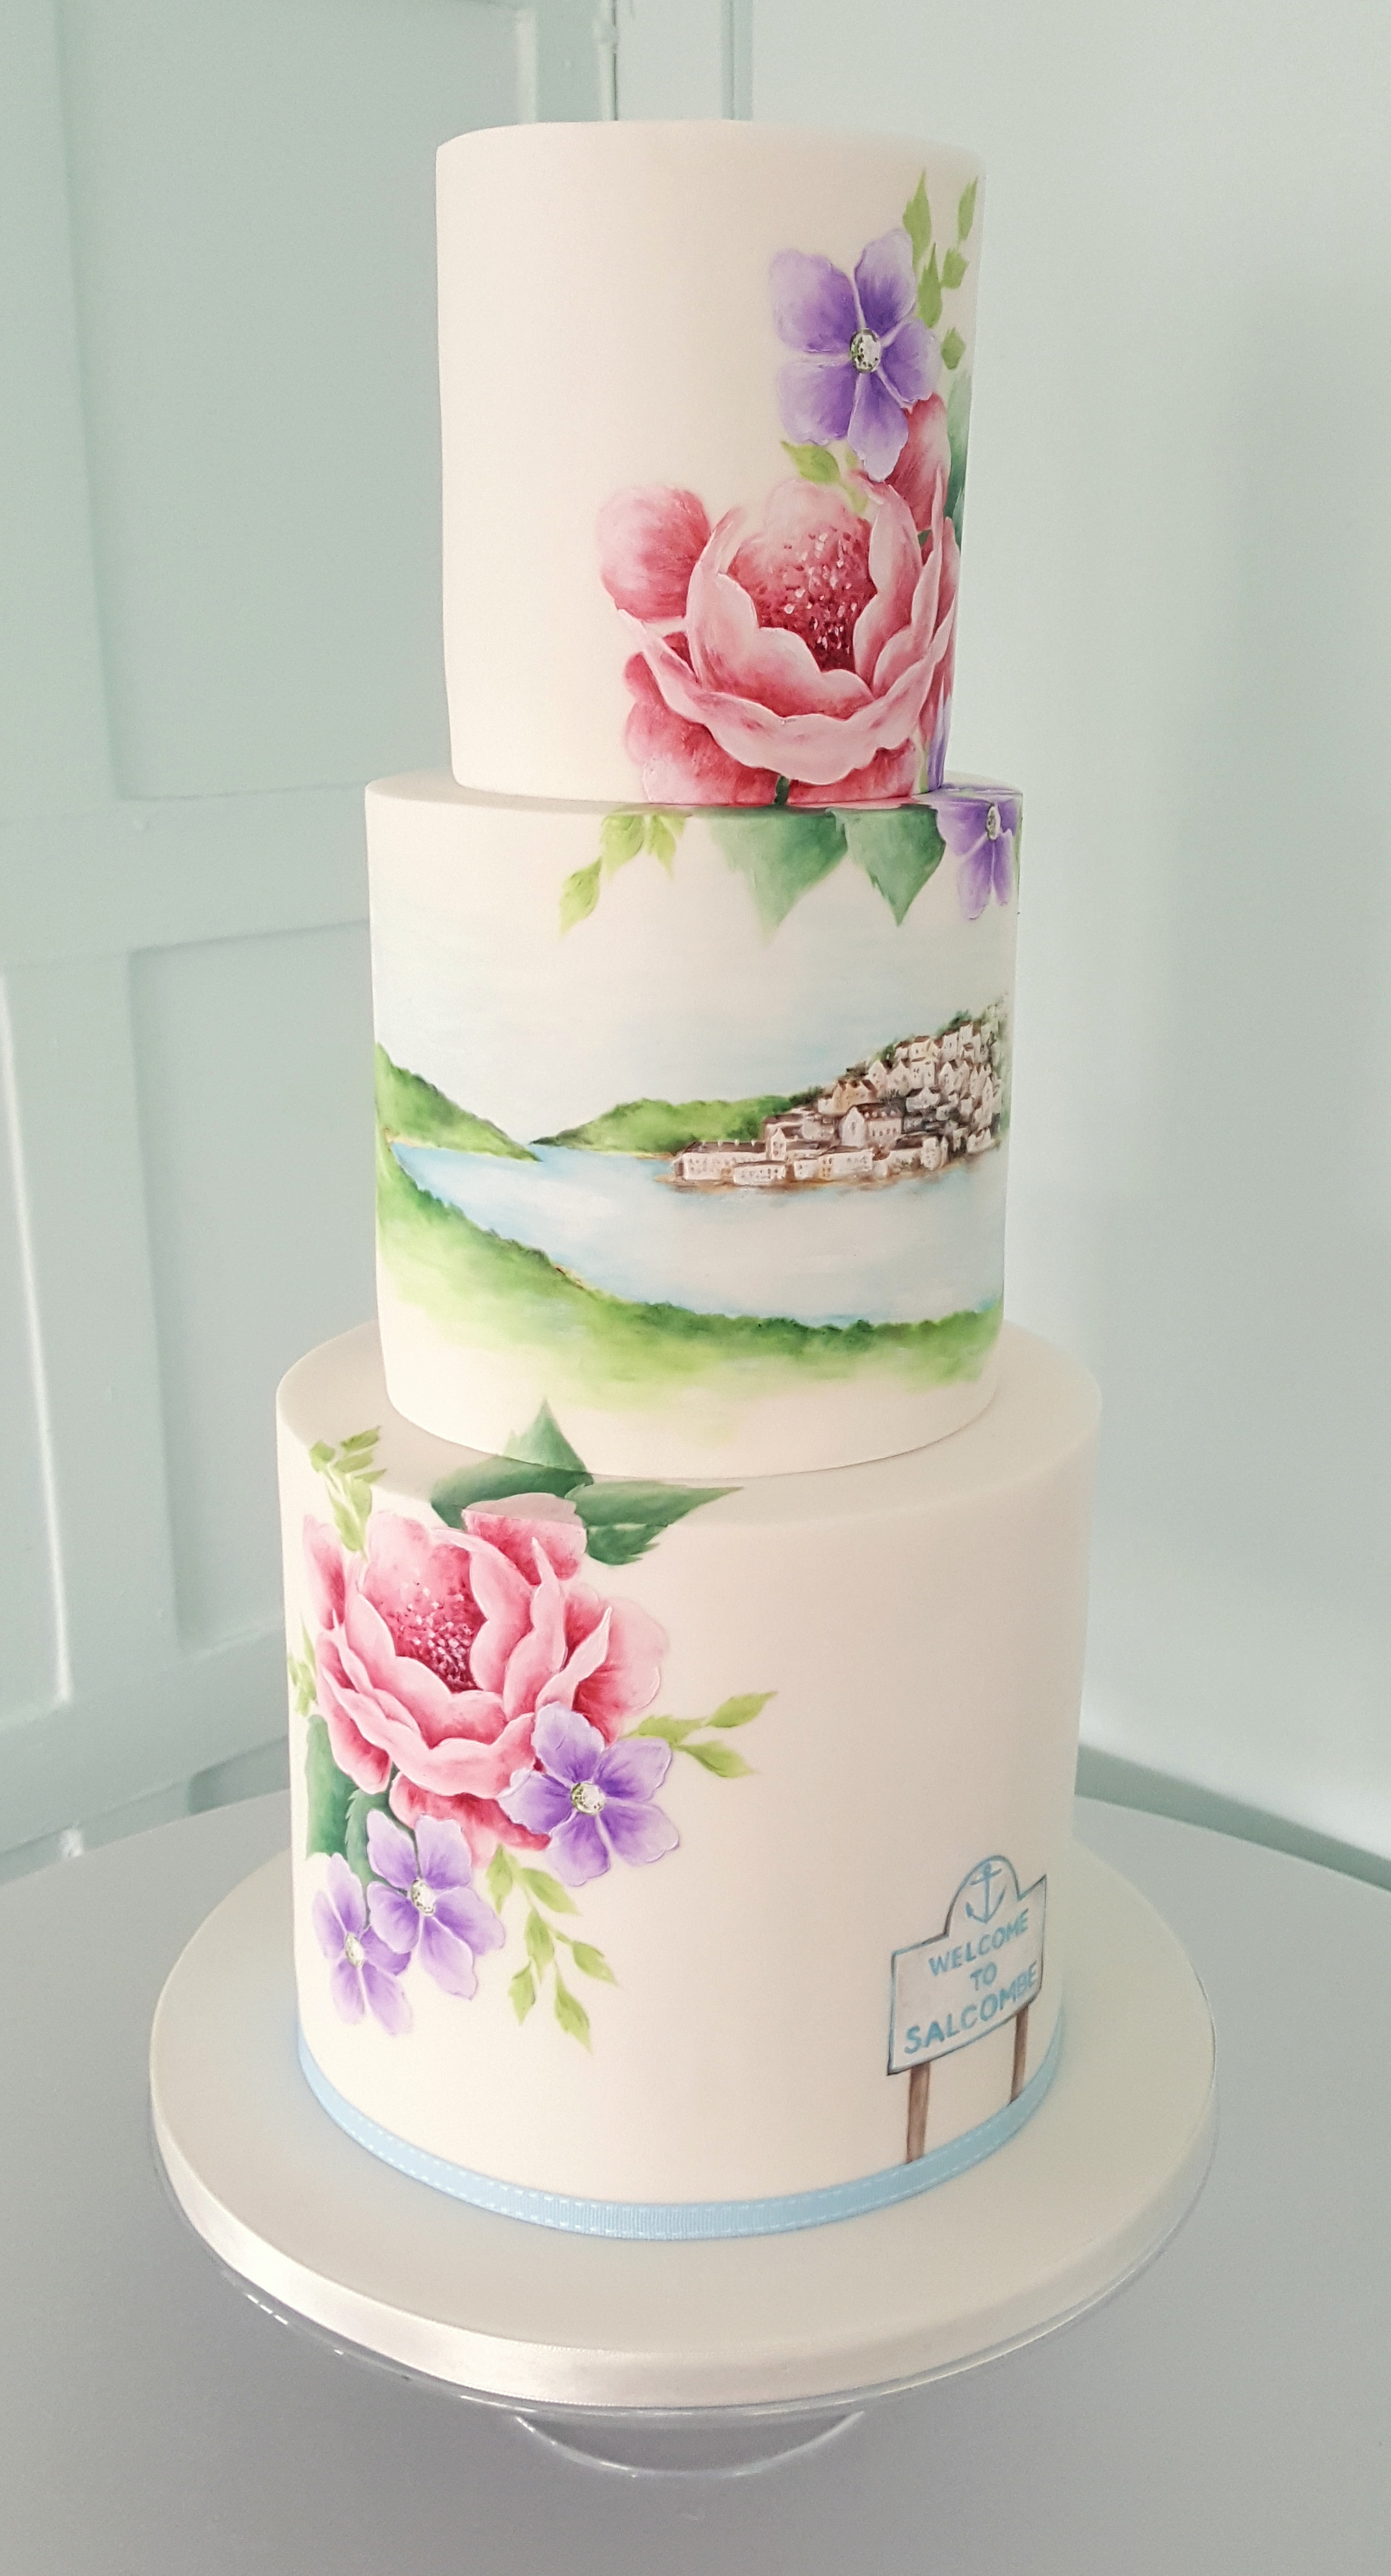 SALCOMBE HARBOUR  A hand painted landscape view of Salcombe harbour is a main focal point of this wedding cake design, surrounded by my signature blooms in shades to match the wedding decor. Landscapes of favorite places are a lovely way to add a personal touch to your cake!